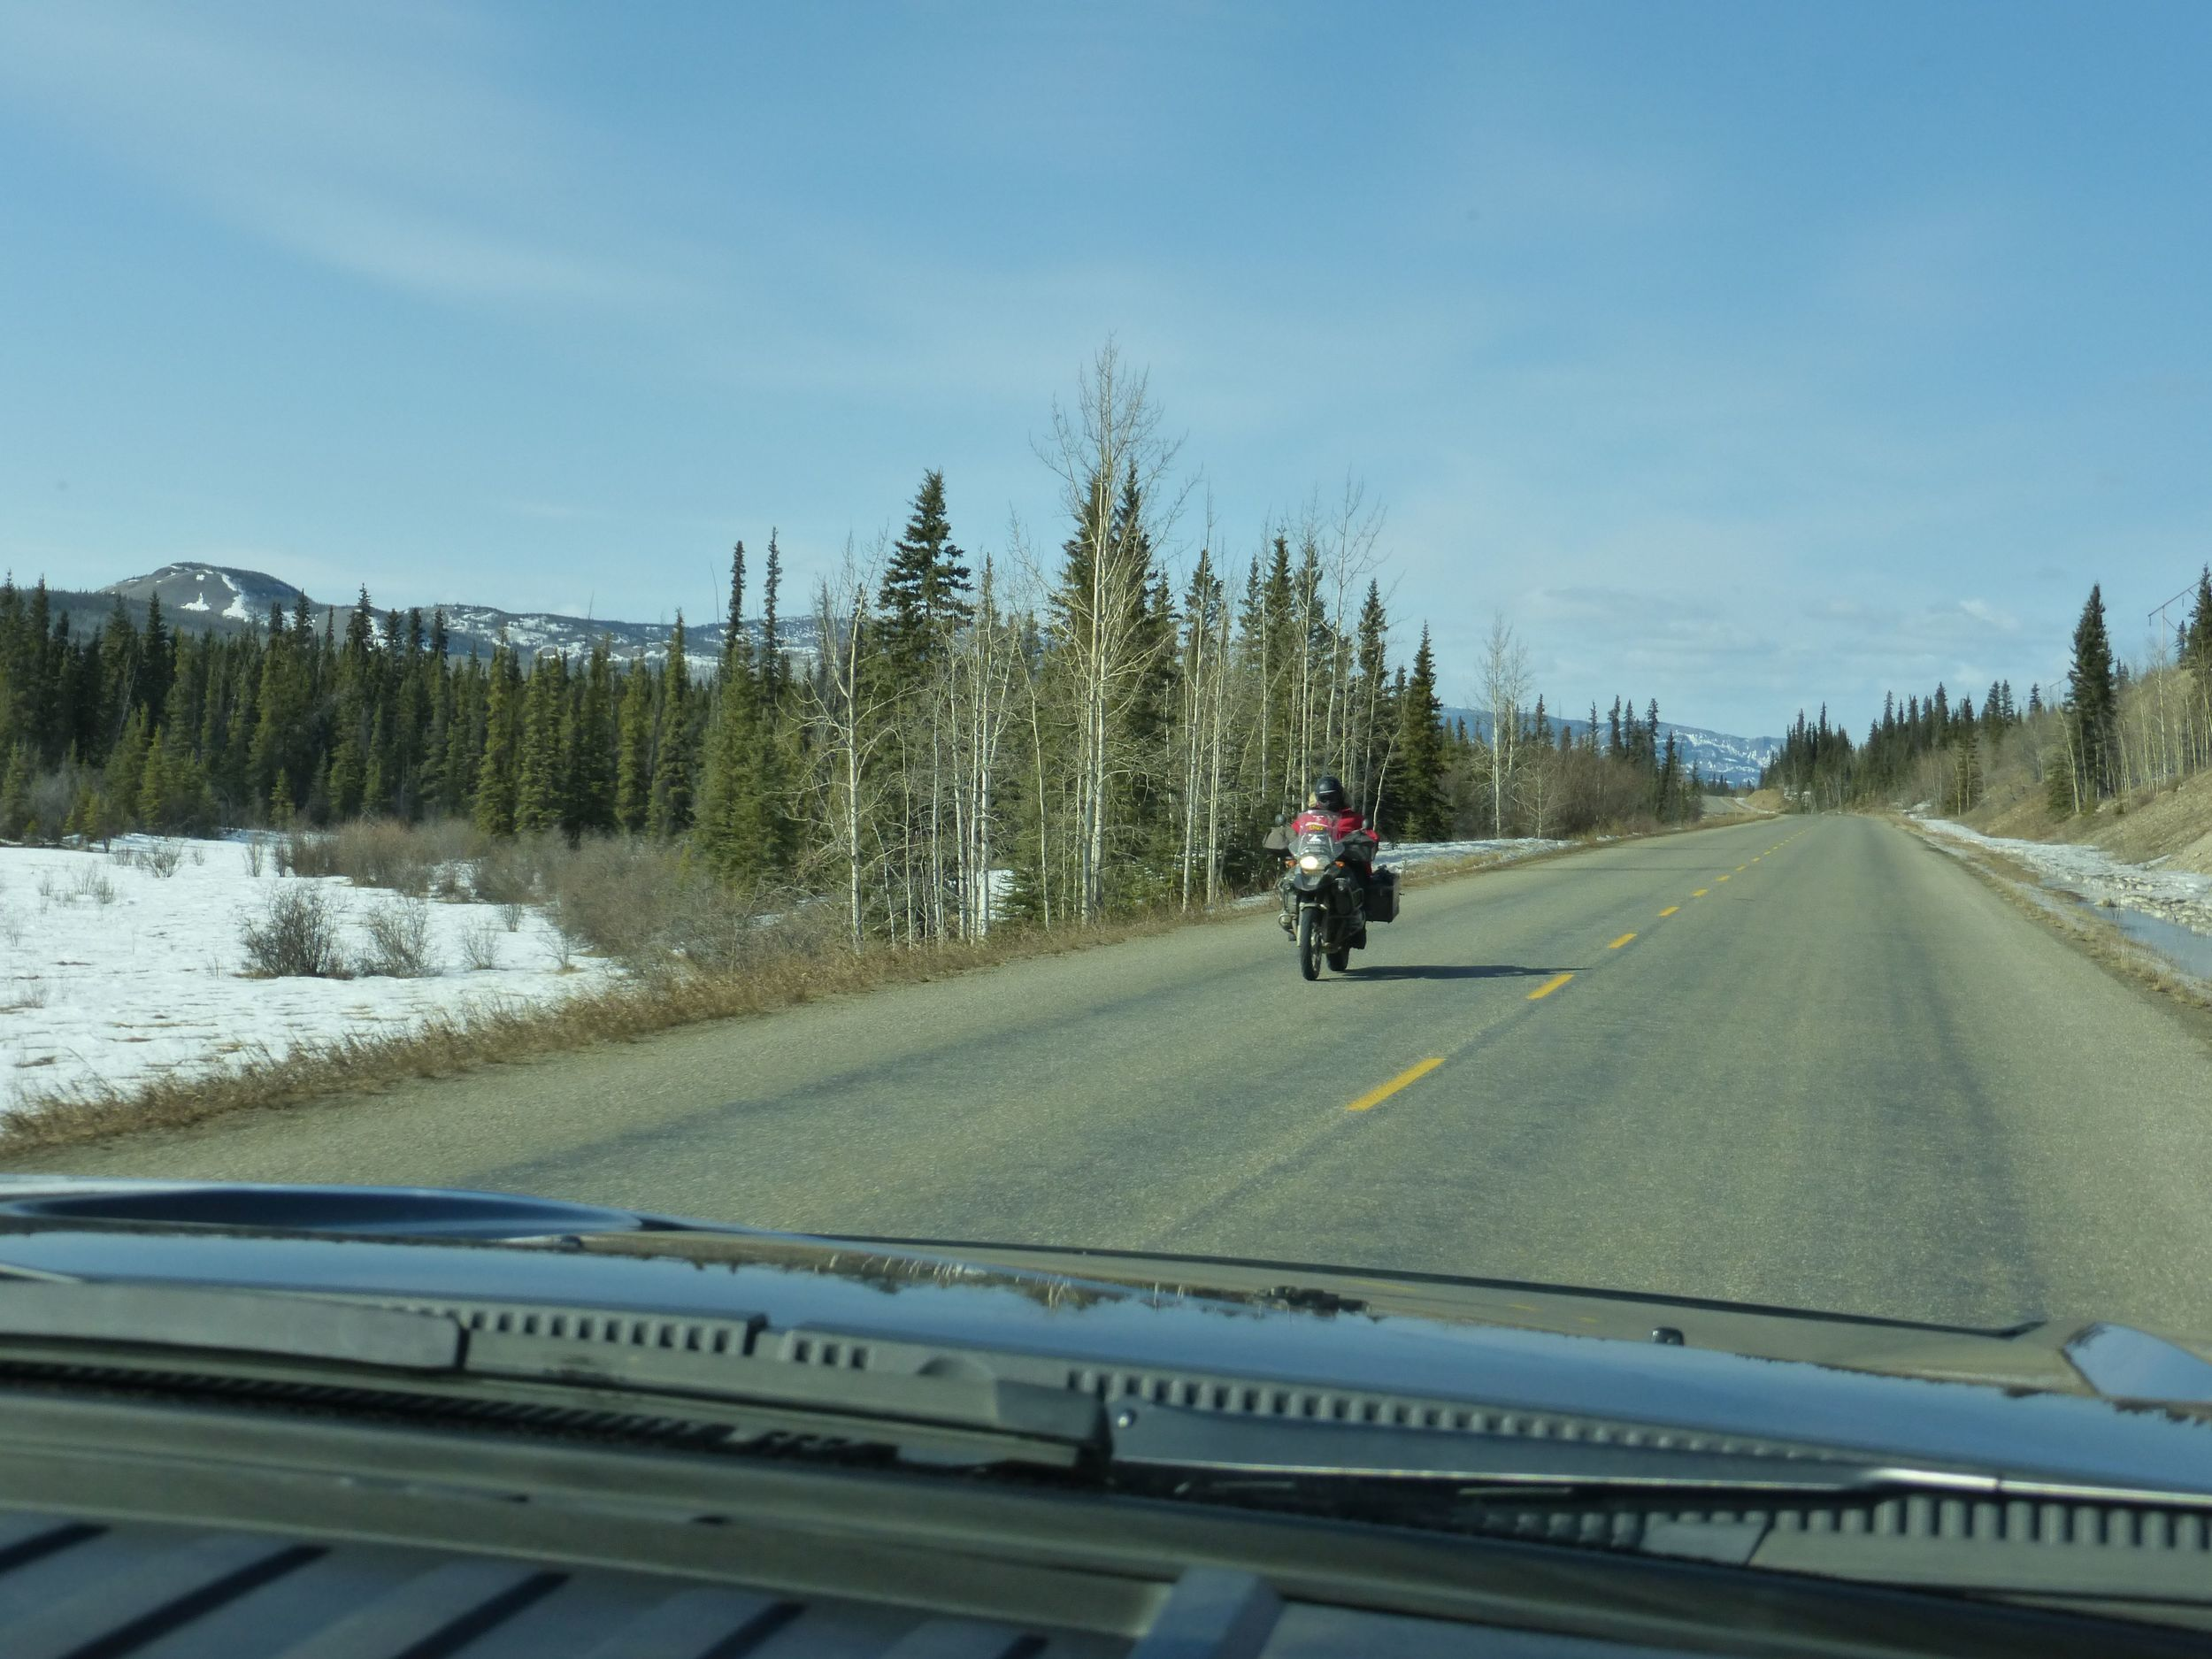 There is a temporary winter road connecting Old Crow, Yukon which is only accessible by air. This biker tried to get there but got turned back after 100km, wonder if I can make it? Would the road still be open?